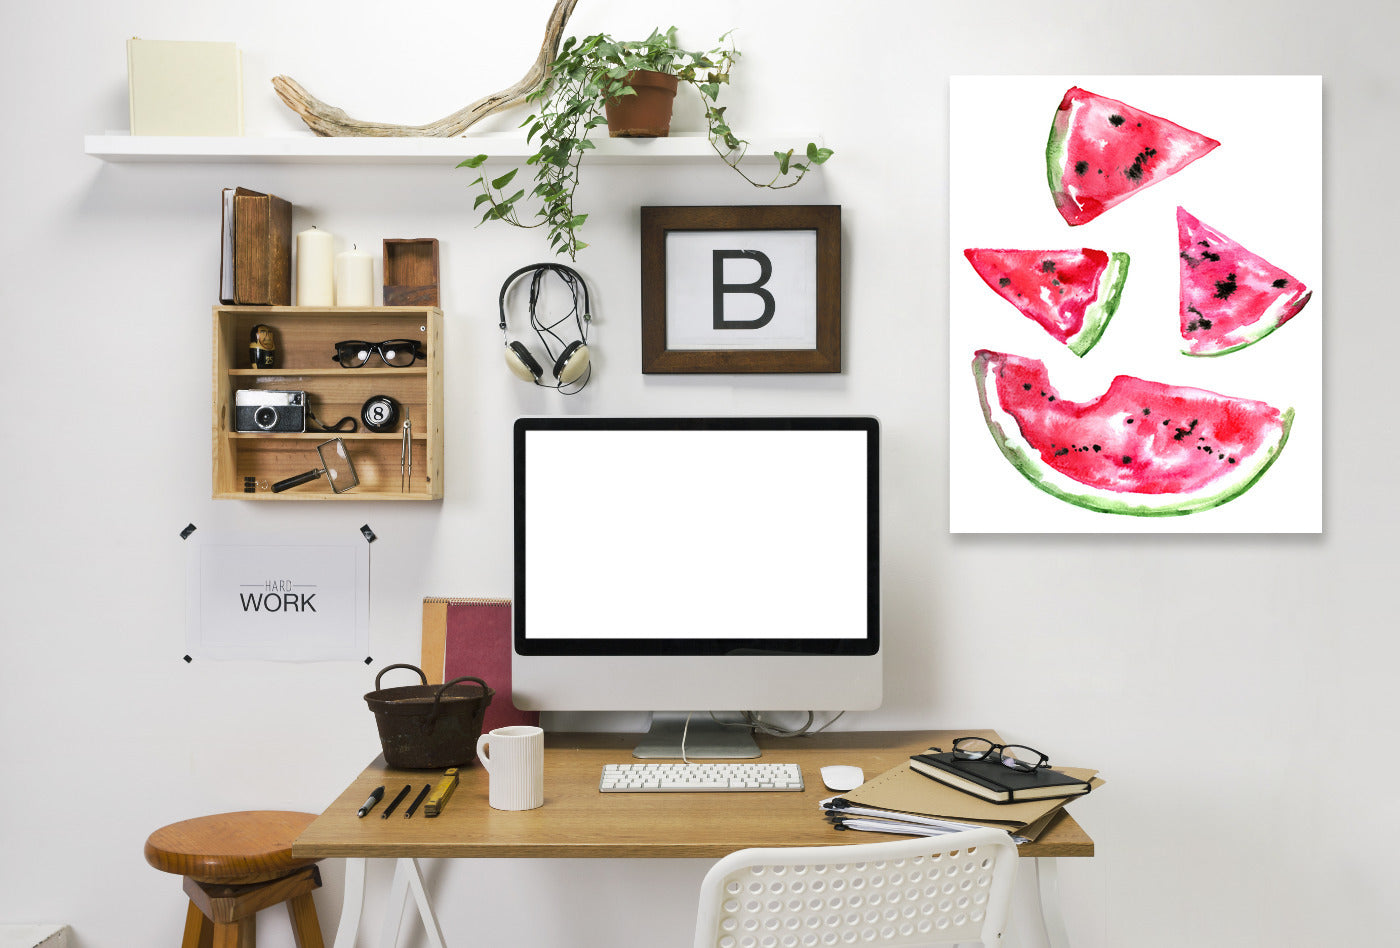 Watermelon Slice by Sam Nagel Wrapped Canvas - Wrapped Canvas - Americanflat